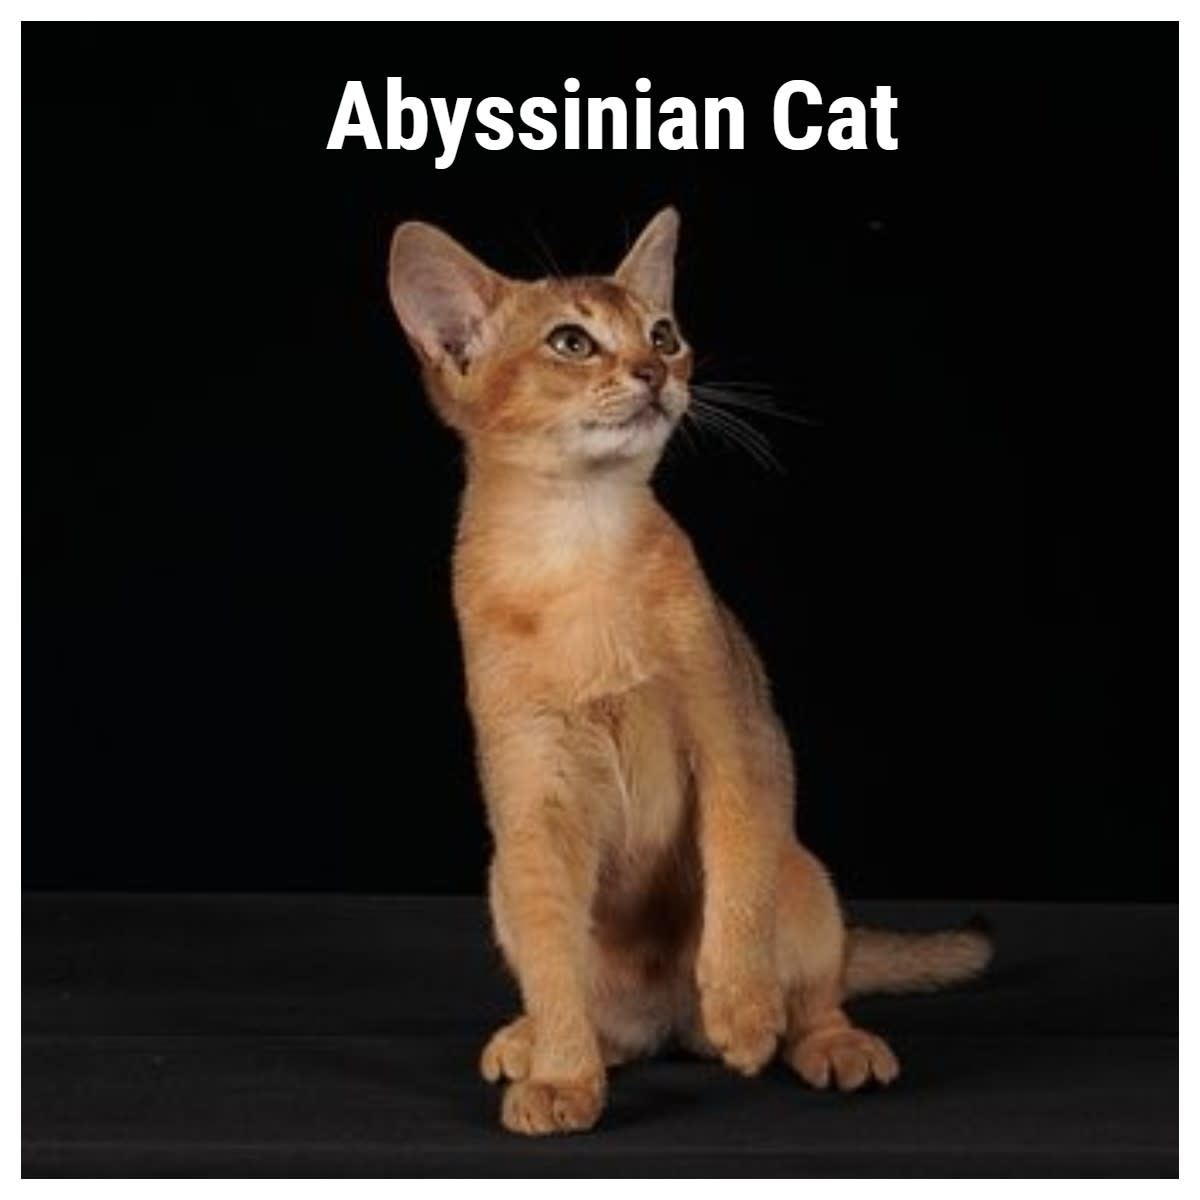 The Abyssinian cat is known for its big personality. Their ticked coat is spectacular.